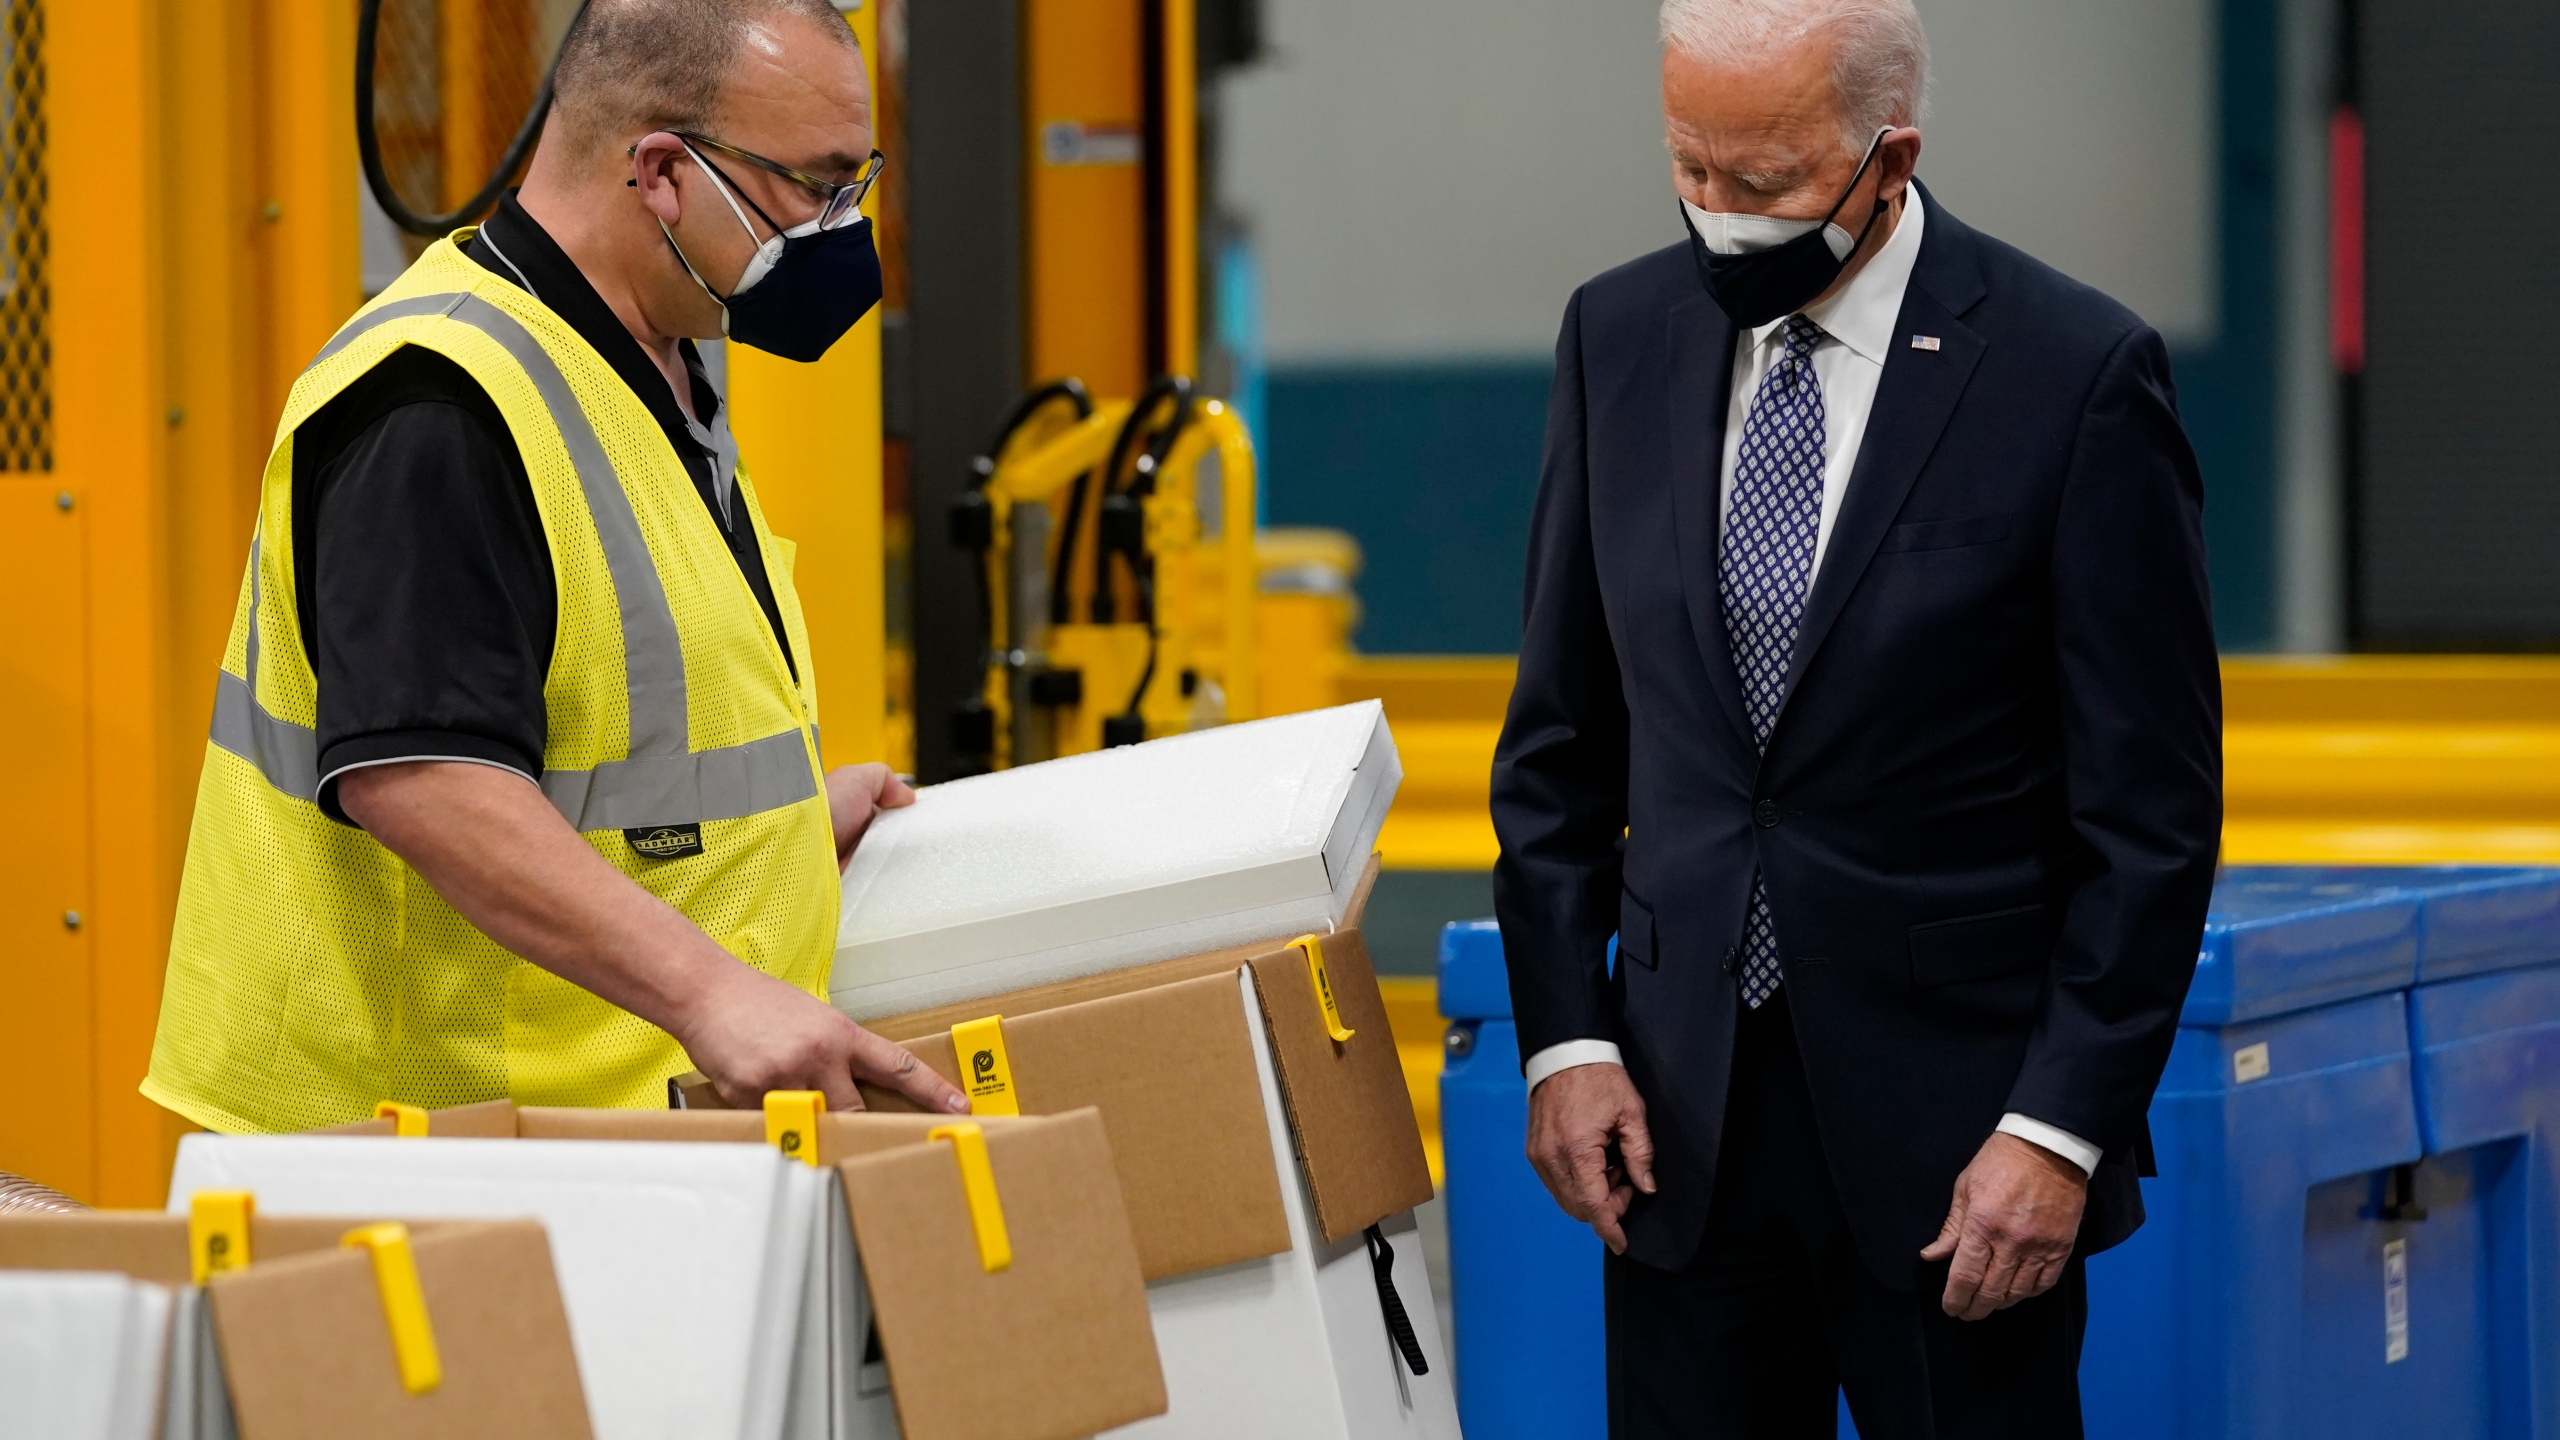 President Joe Biden tours a Pfizer manufacturing site, Friday, Feb. 19, 2021, in Portage, Mich. (AP Photo/Evan Vucci)